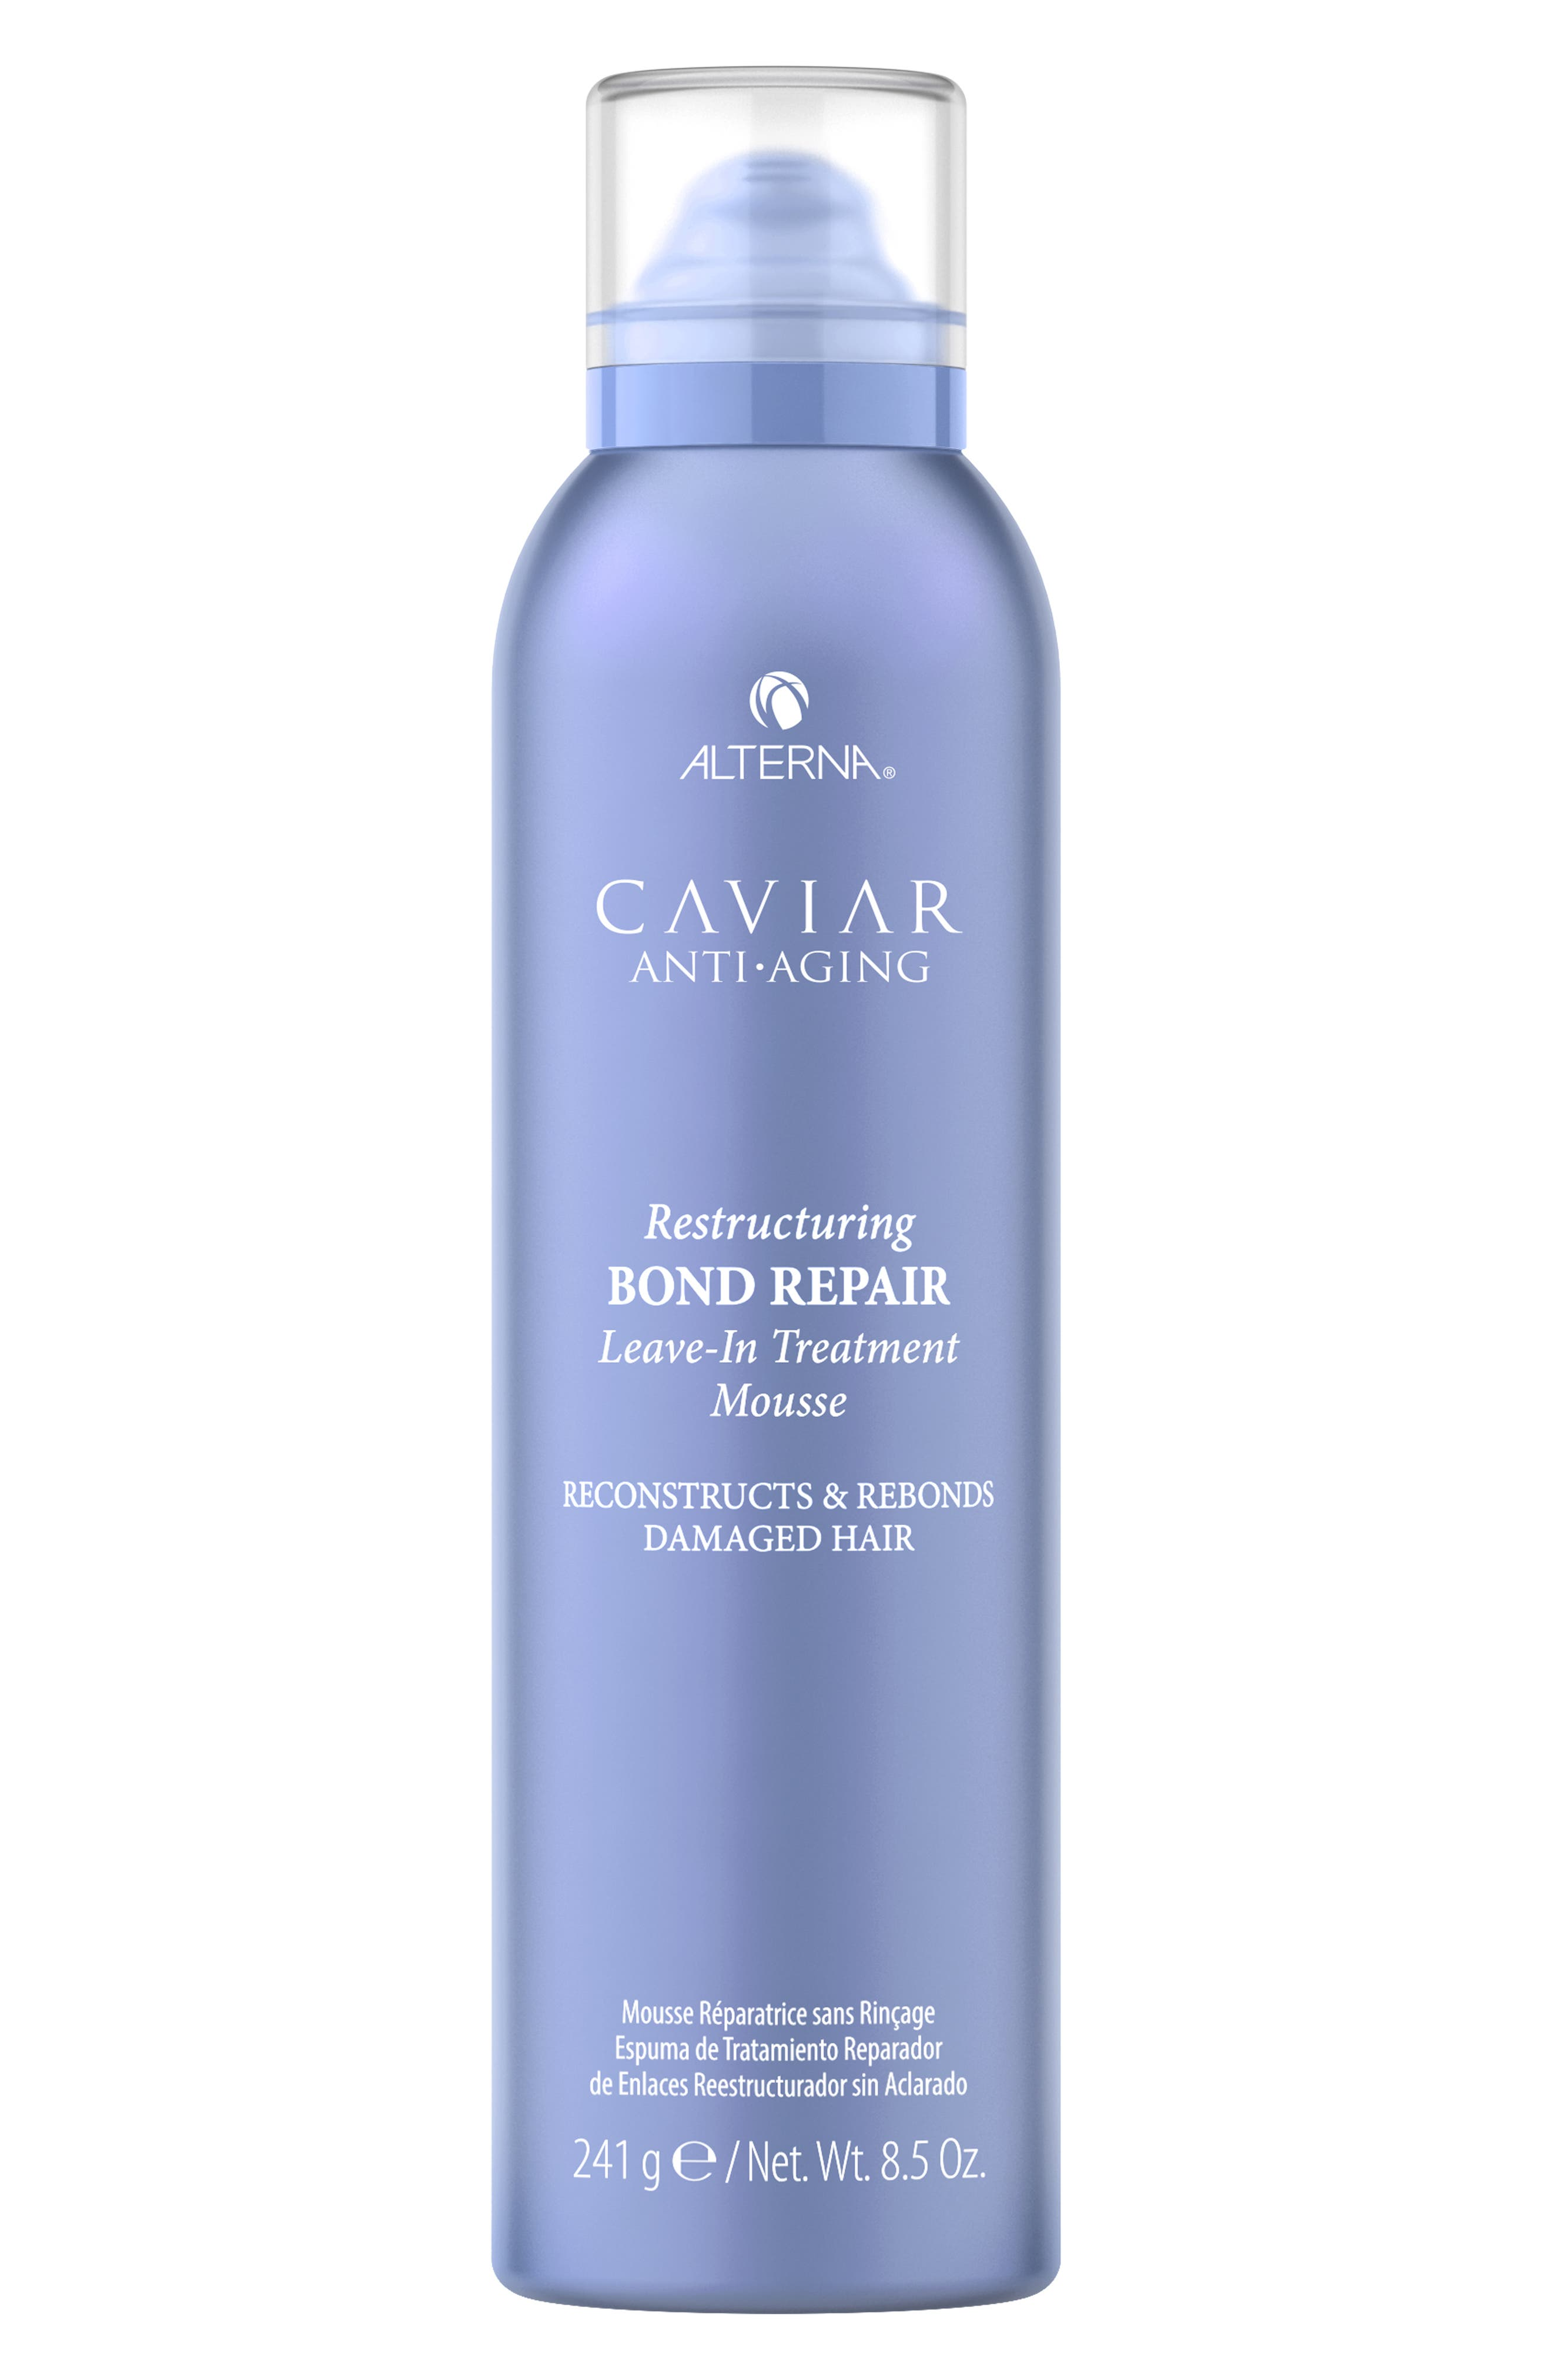 Caviar Anti-Aging Restructuring Bond Repair Leave-in Treatment Mousse,                             Main thumbnail 1, color,                             NO COLOR